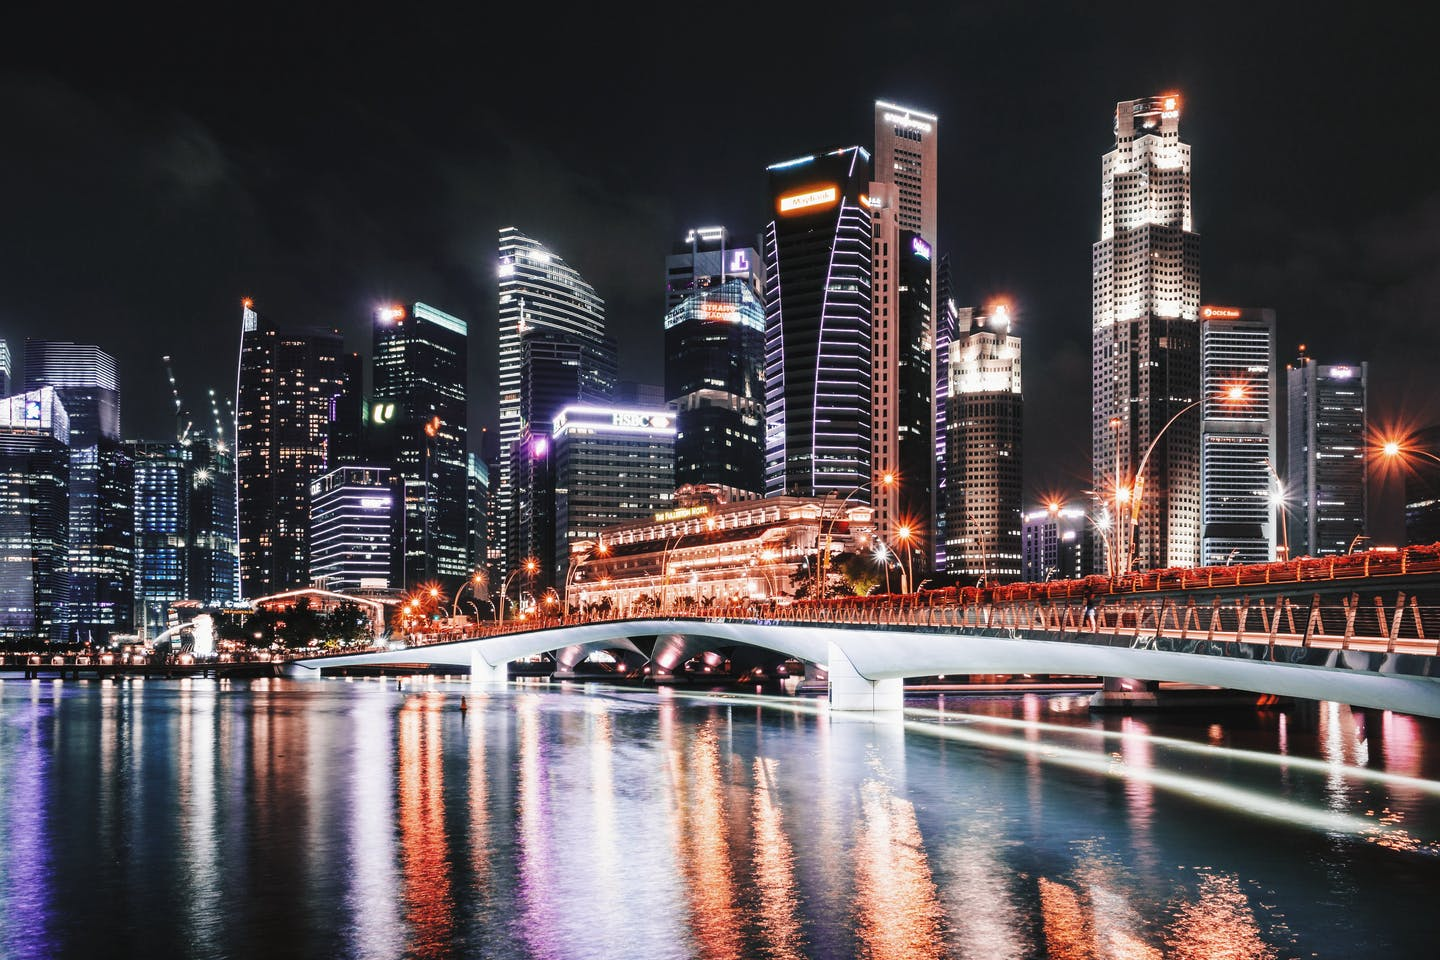 Singapore's 2020 Budget: What's in there for sustainability and climate